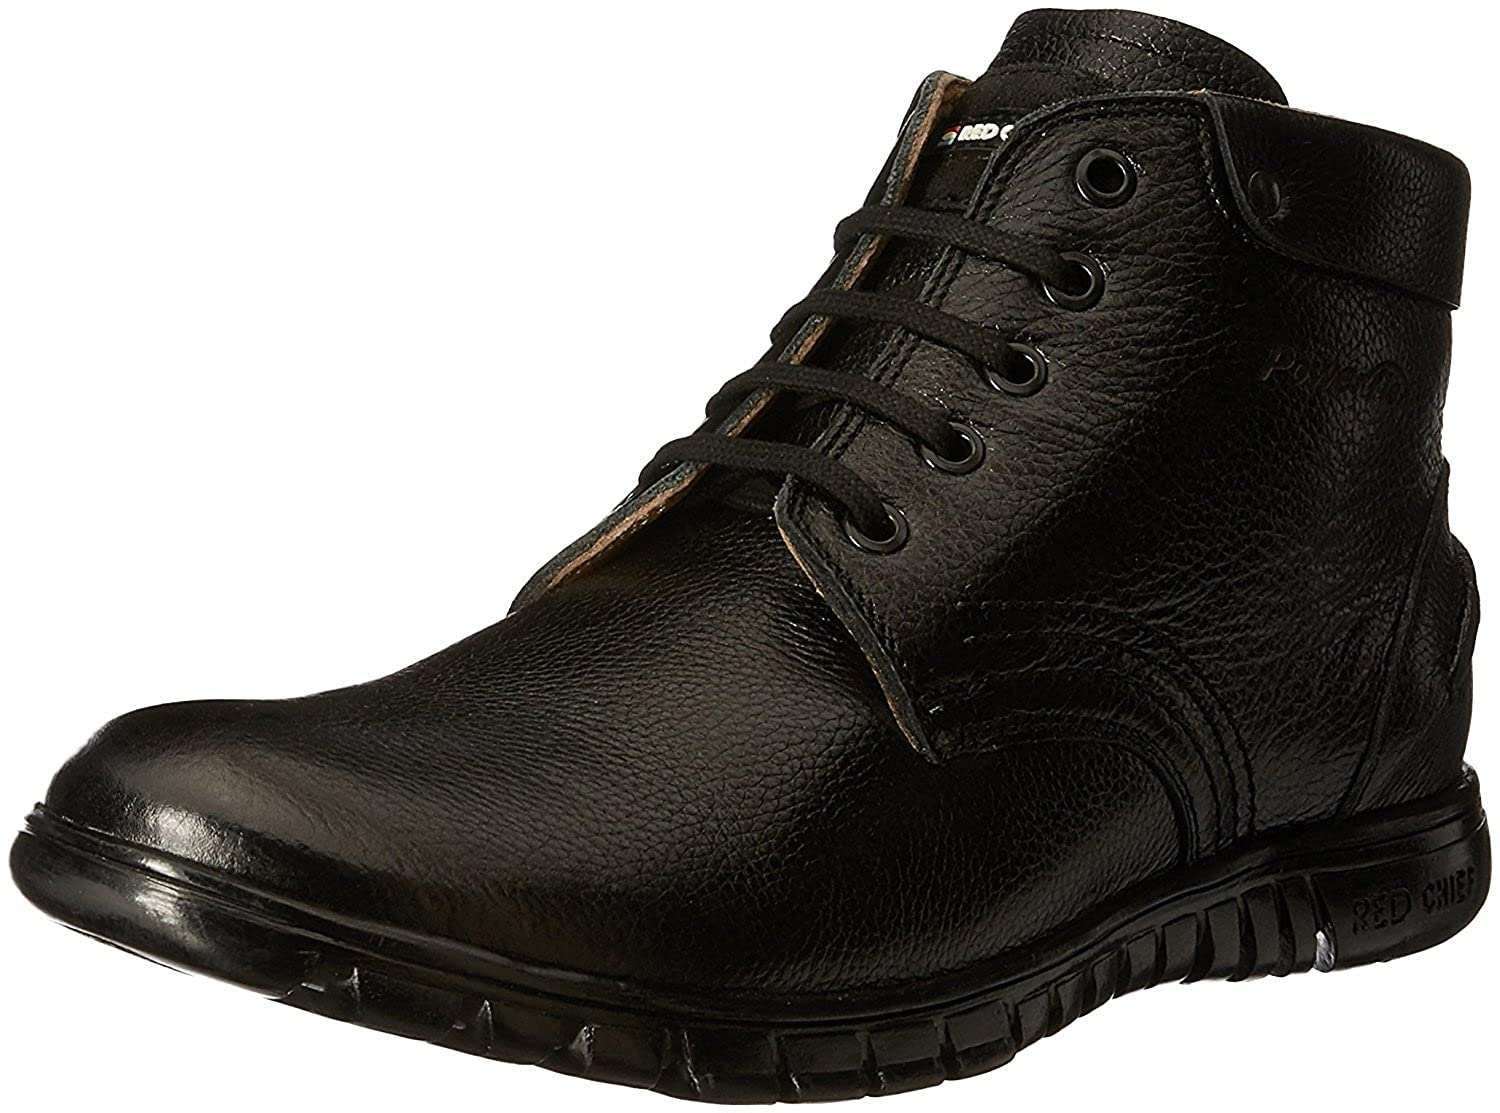 Buy Red Chief Men's Black Leather Boat